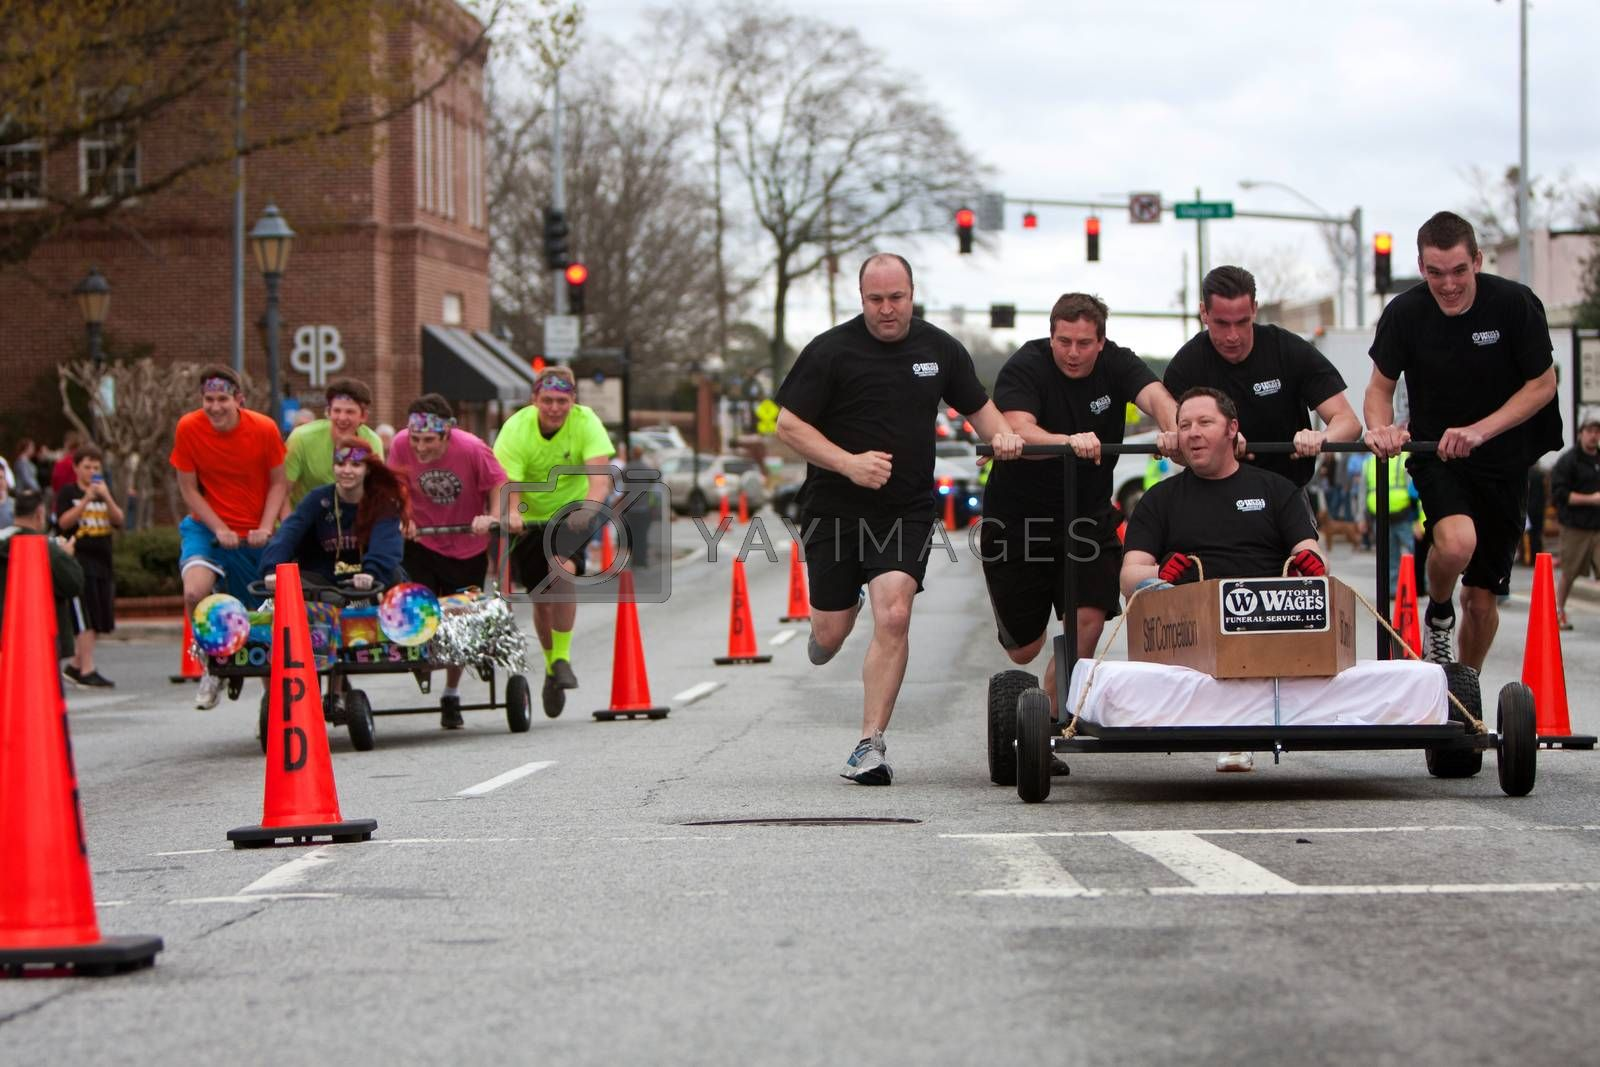 Royalty free image of Two Teams Race Beds On City Street by BluIz60